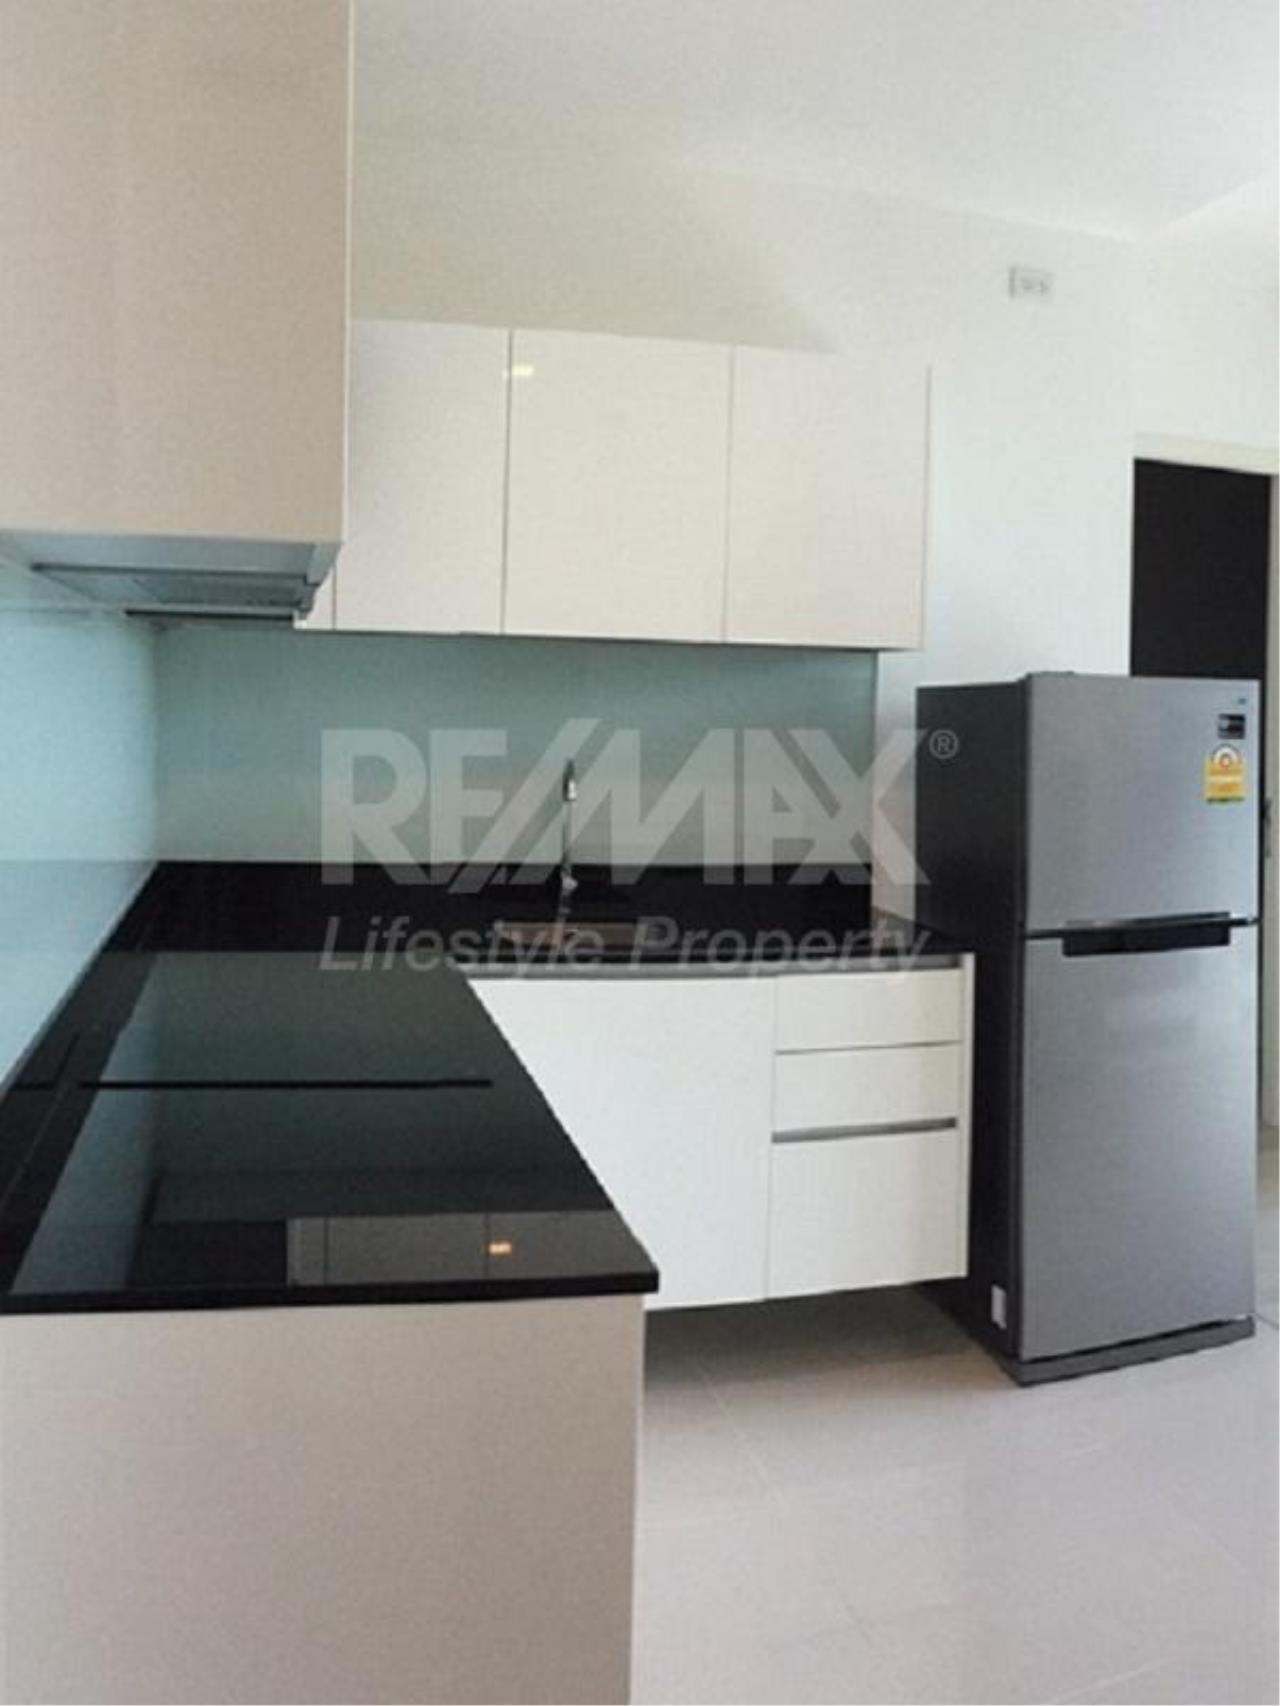 RE/MAX LifeStyle Property Agency's Quinn Condo Ratchada 1